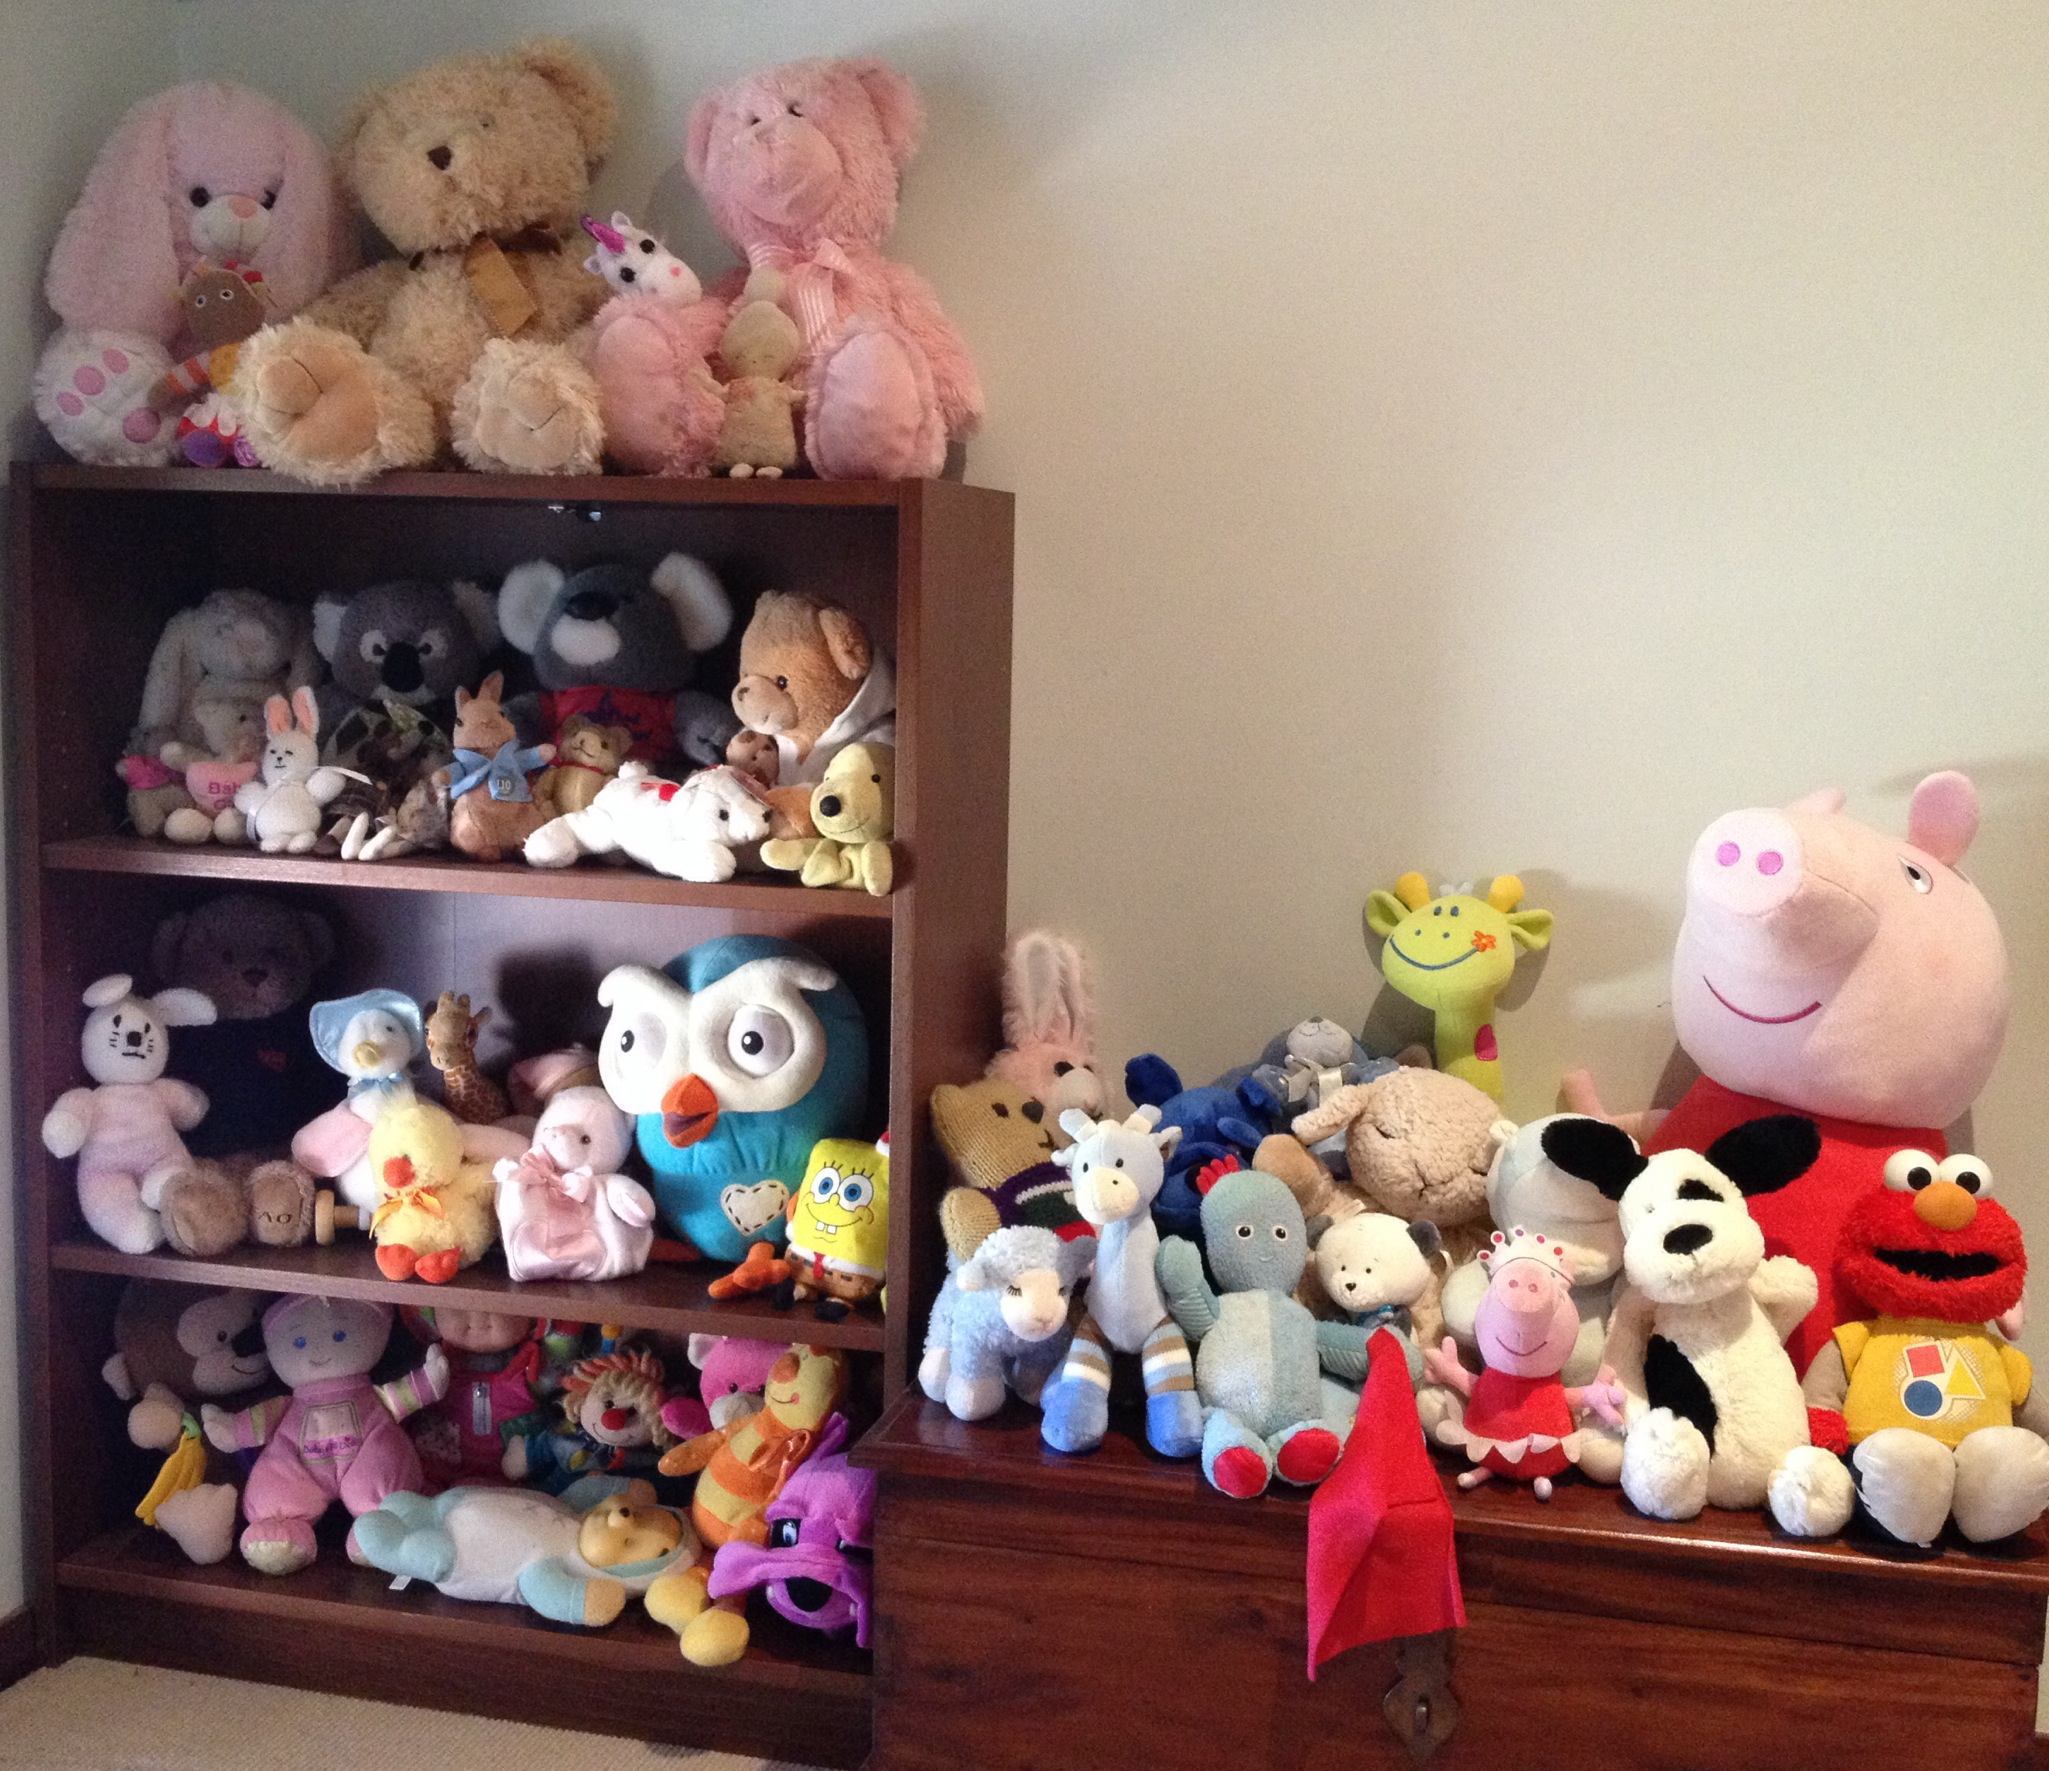 Please no more stuffed toys! Gift ideas that aren't just soft and fluffy